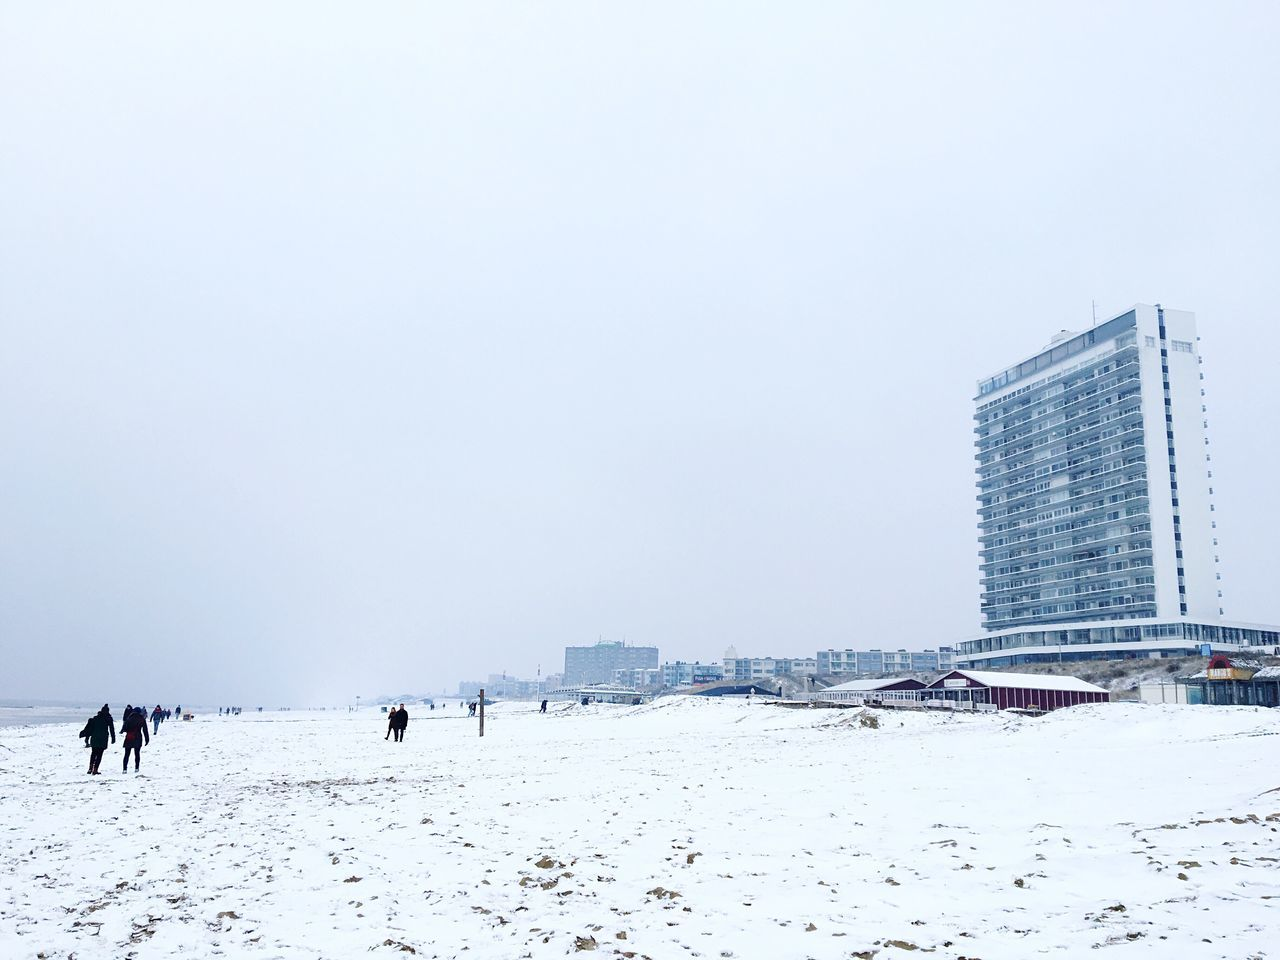 Snow Winter Cold Temperature Building Exterior Weather Built Structure Nature Outdoors Fog Winter Beach Architecture Day Real People City Men Sky Mammal Seaside